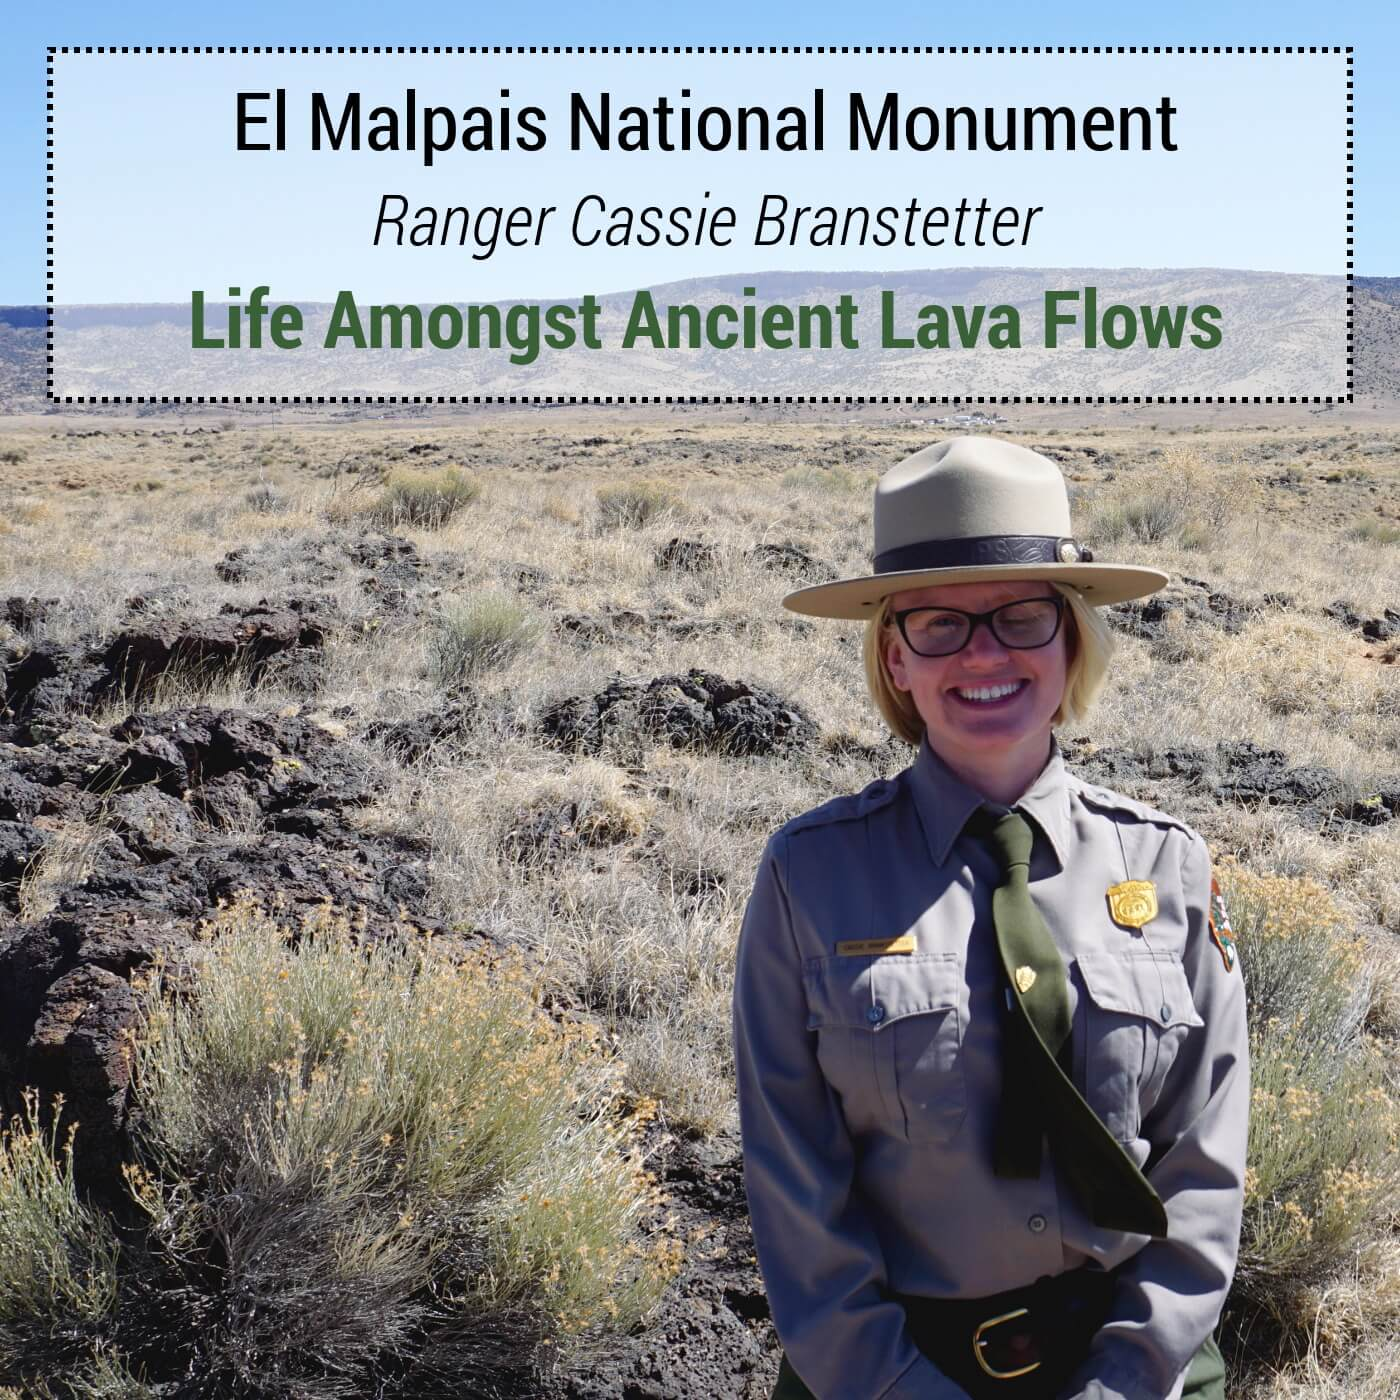 El Malpais National Monument - Ranger Cassie Branstetter - Life Amongst Ancient Lava Flows